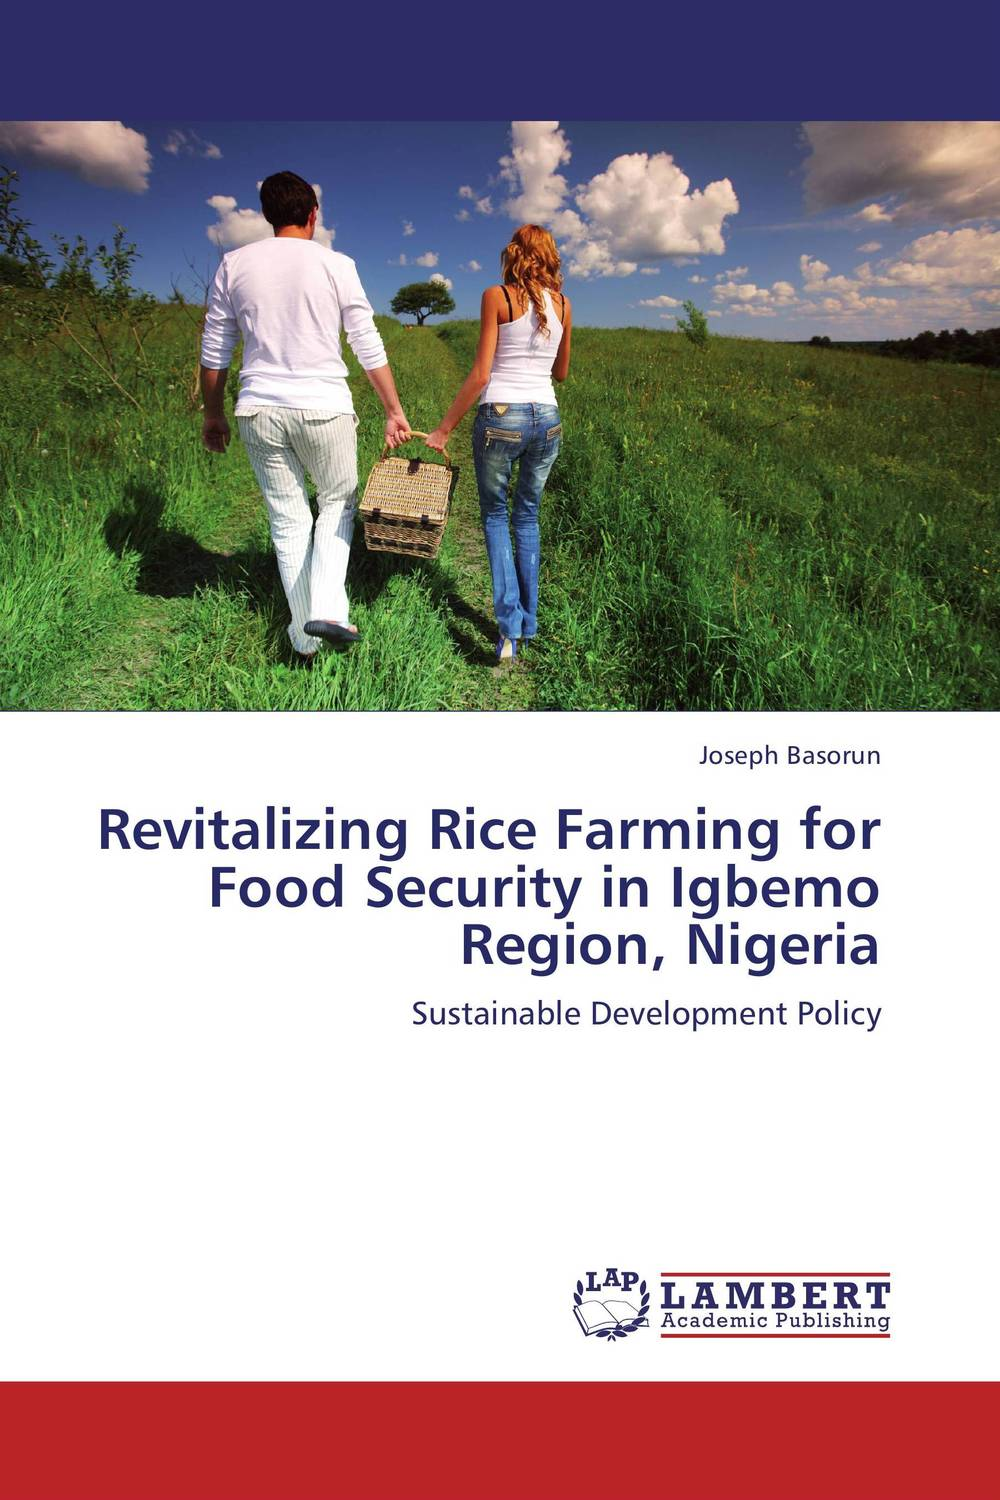 Revitalizing Rice Farming for Food Security in Igbemo Region, Nigeria 4 channel 12v low level trigger relay module for arduino works with official arduino boards